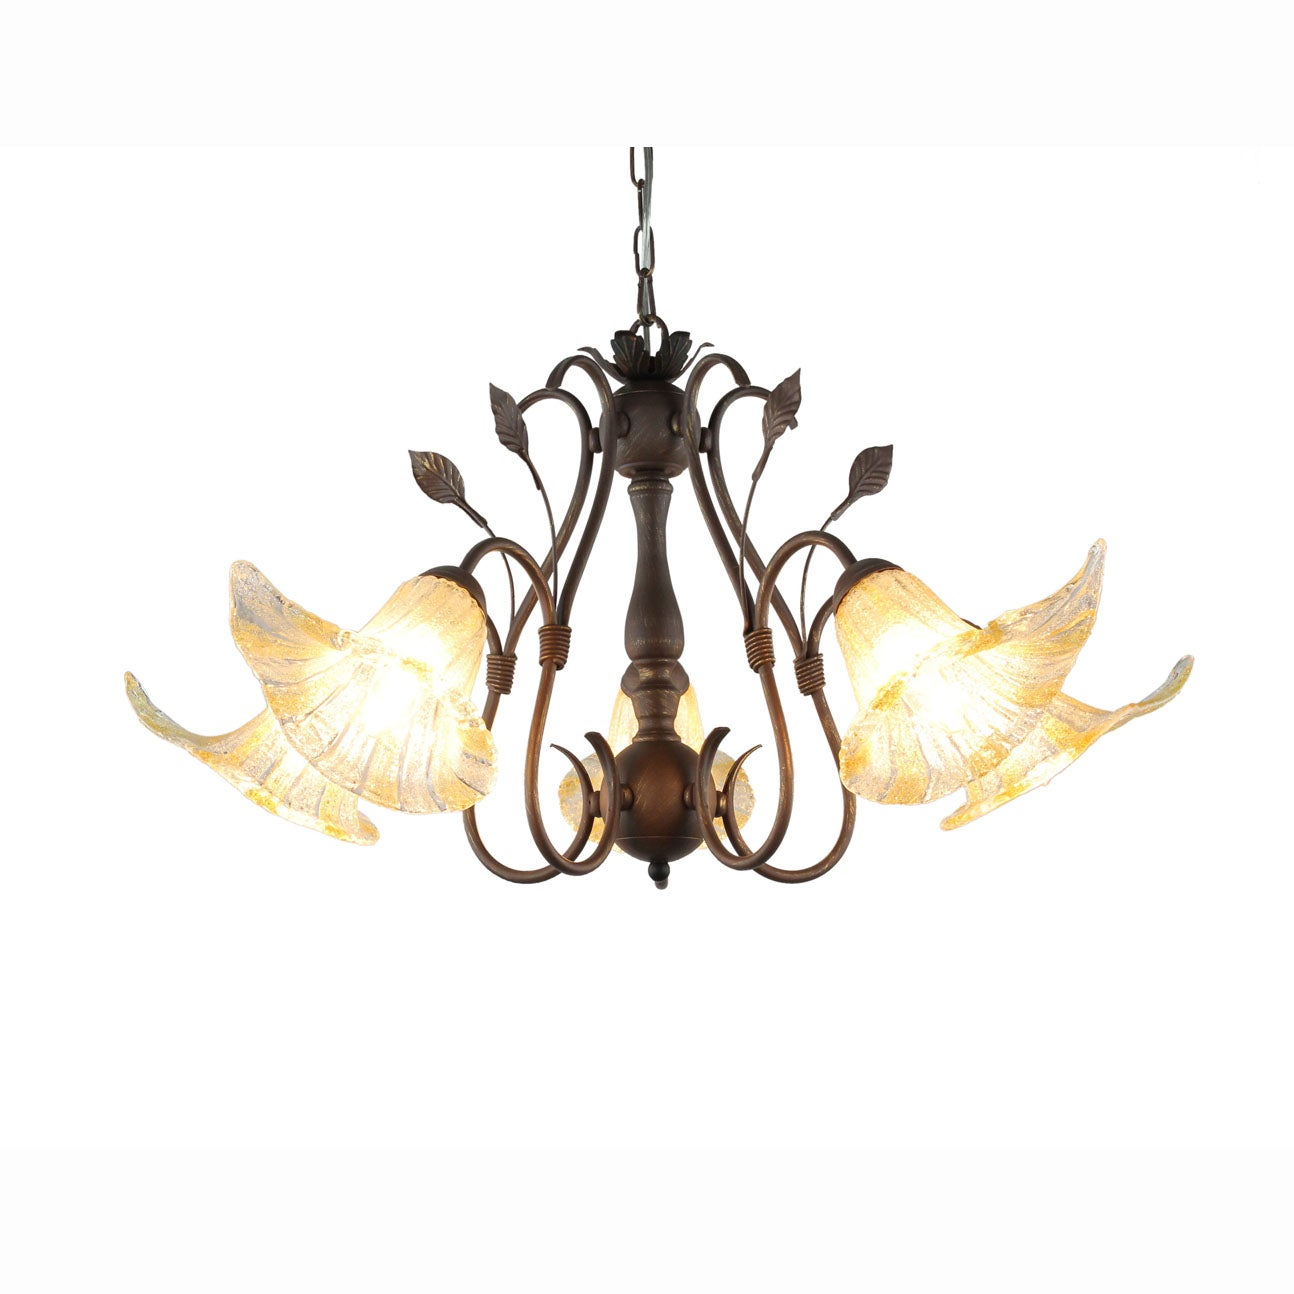 Hand-blown Glass 5-light Brushed Oak Finish Chandelier